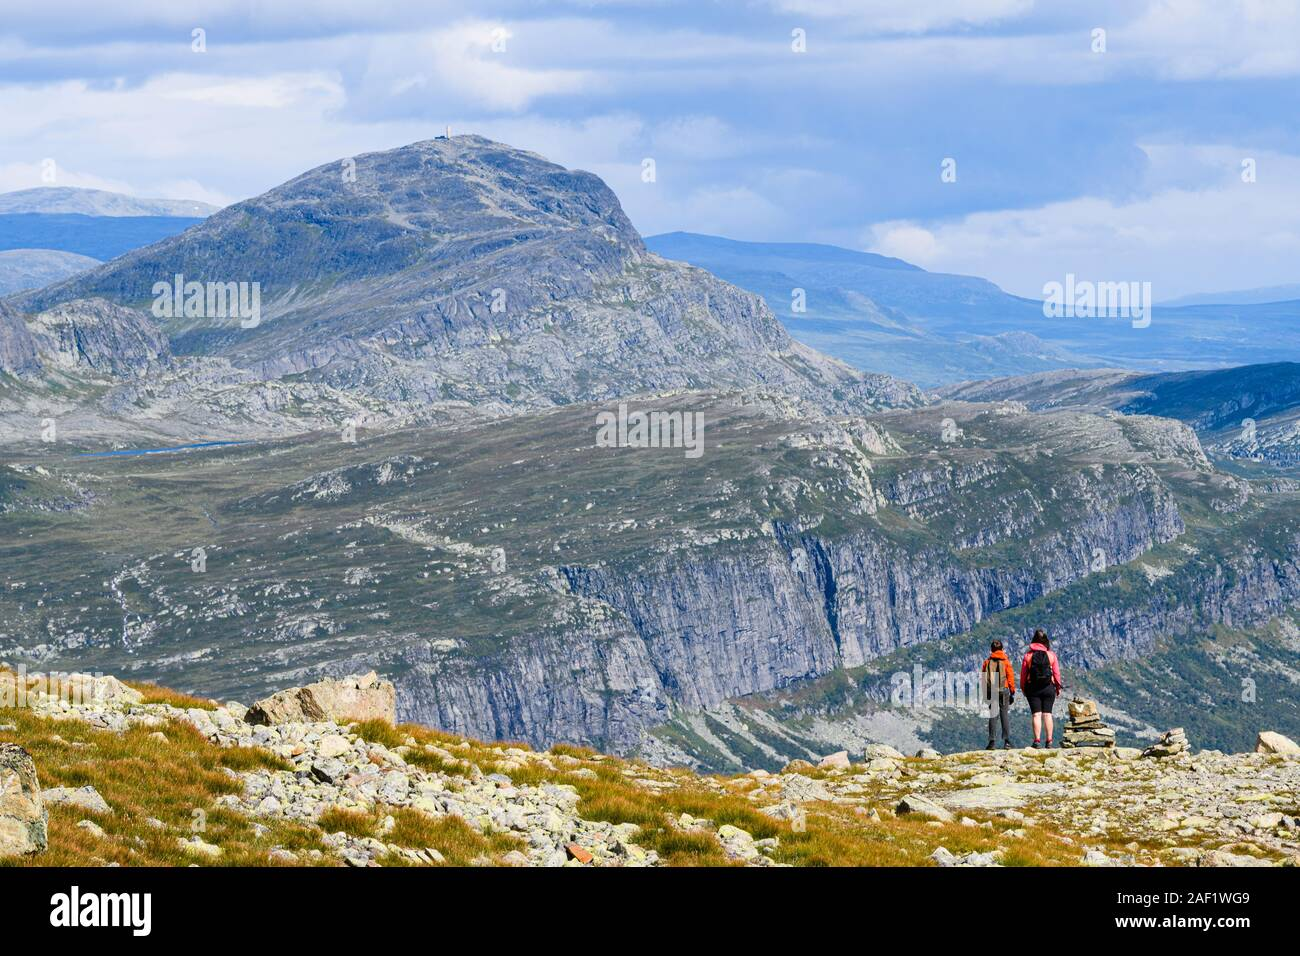 Hikers in mountains Stock Photo